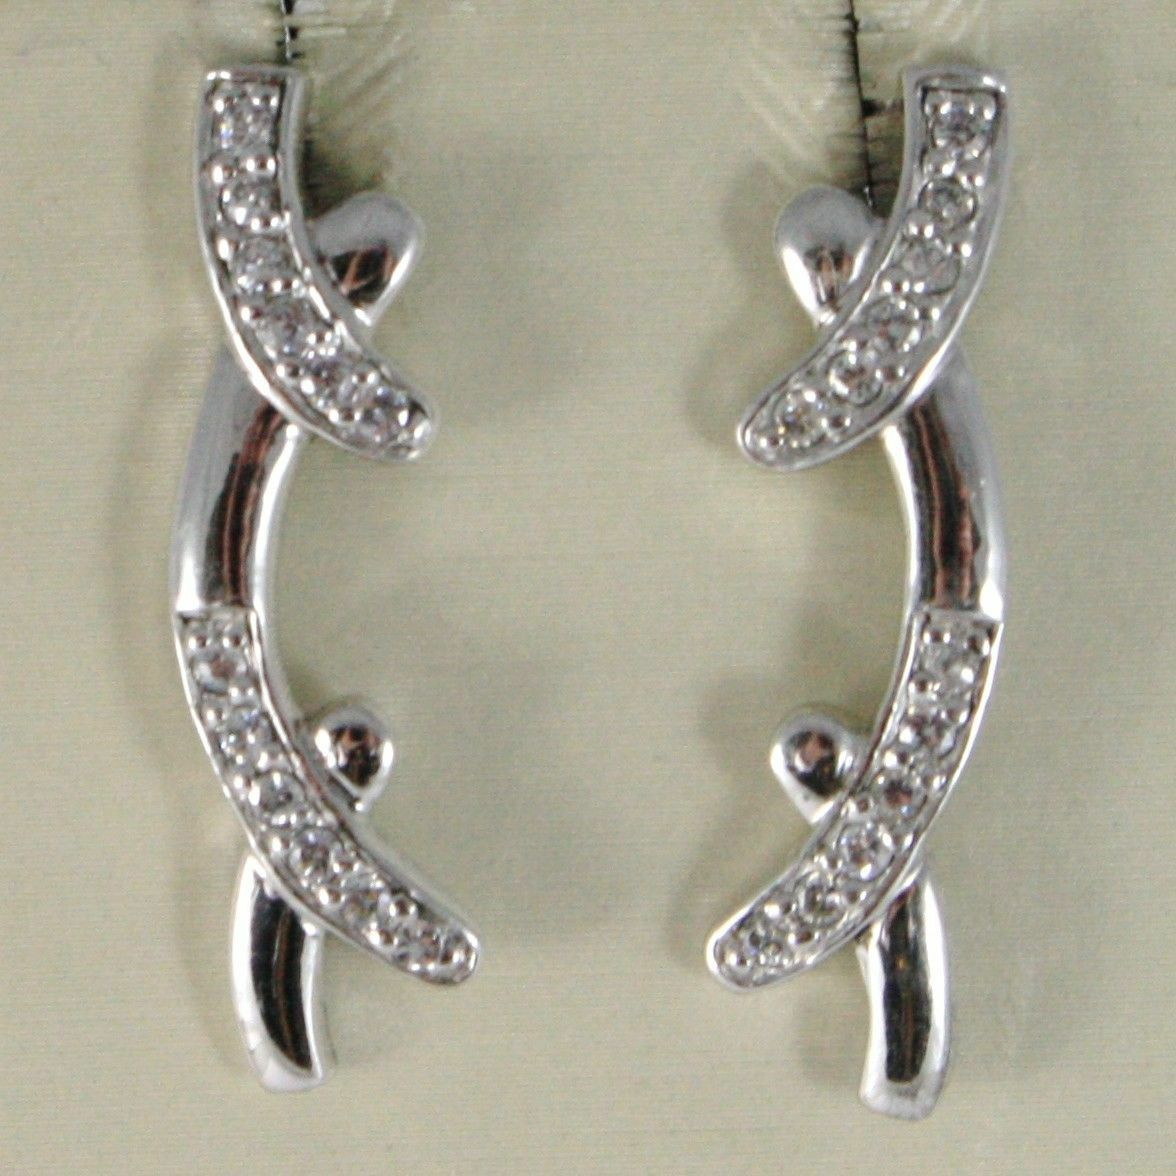 Earrings Silver 925 Run at Temple Hard with Zircon Cubic White